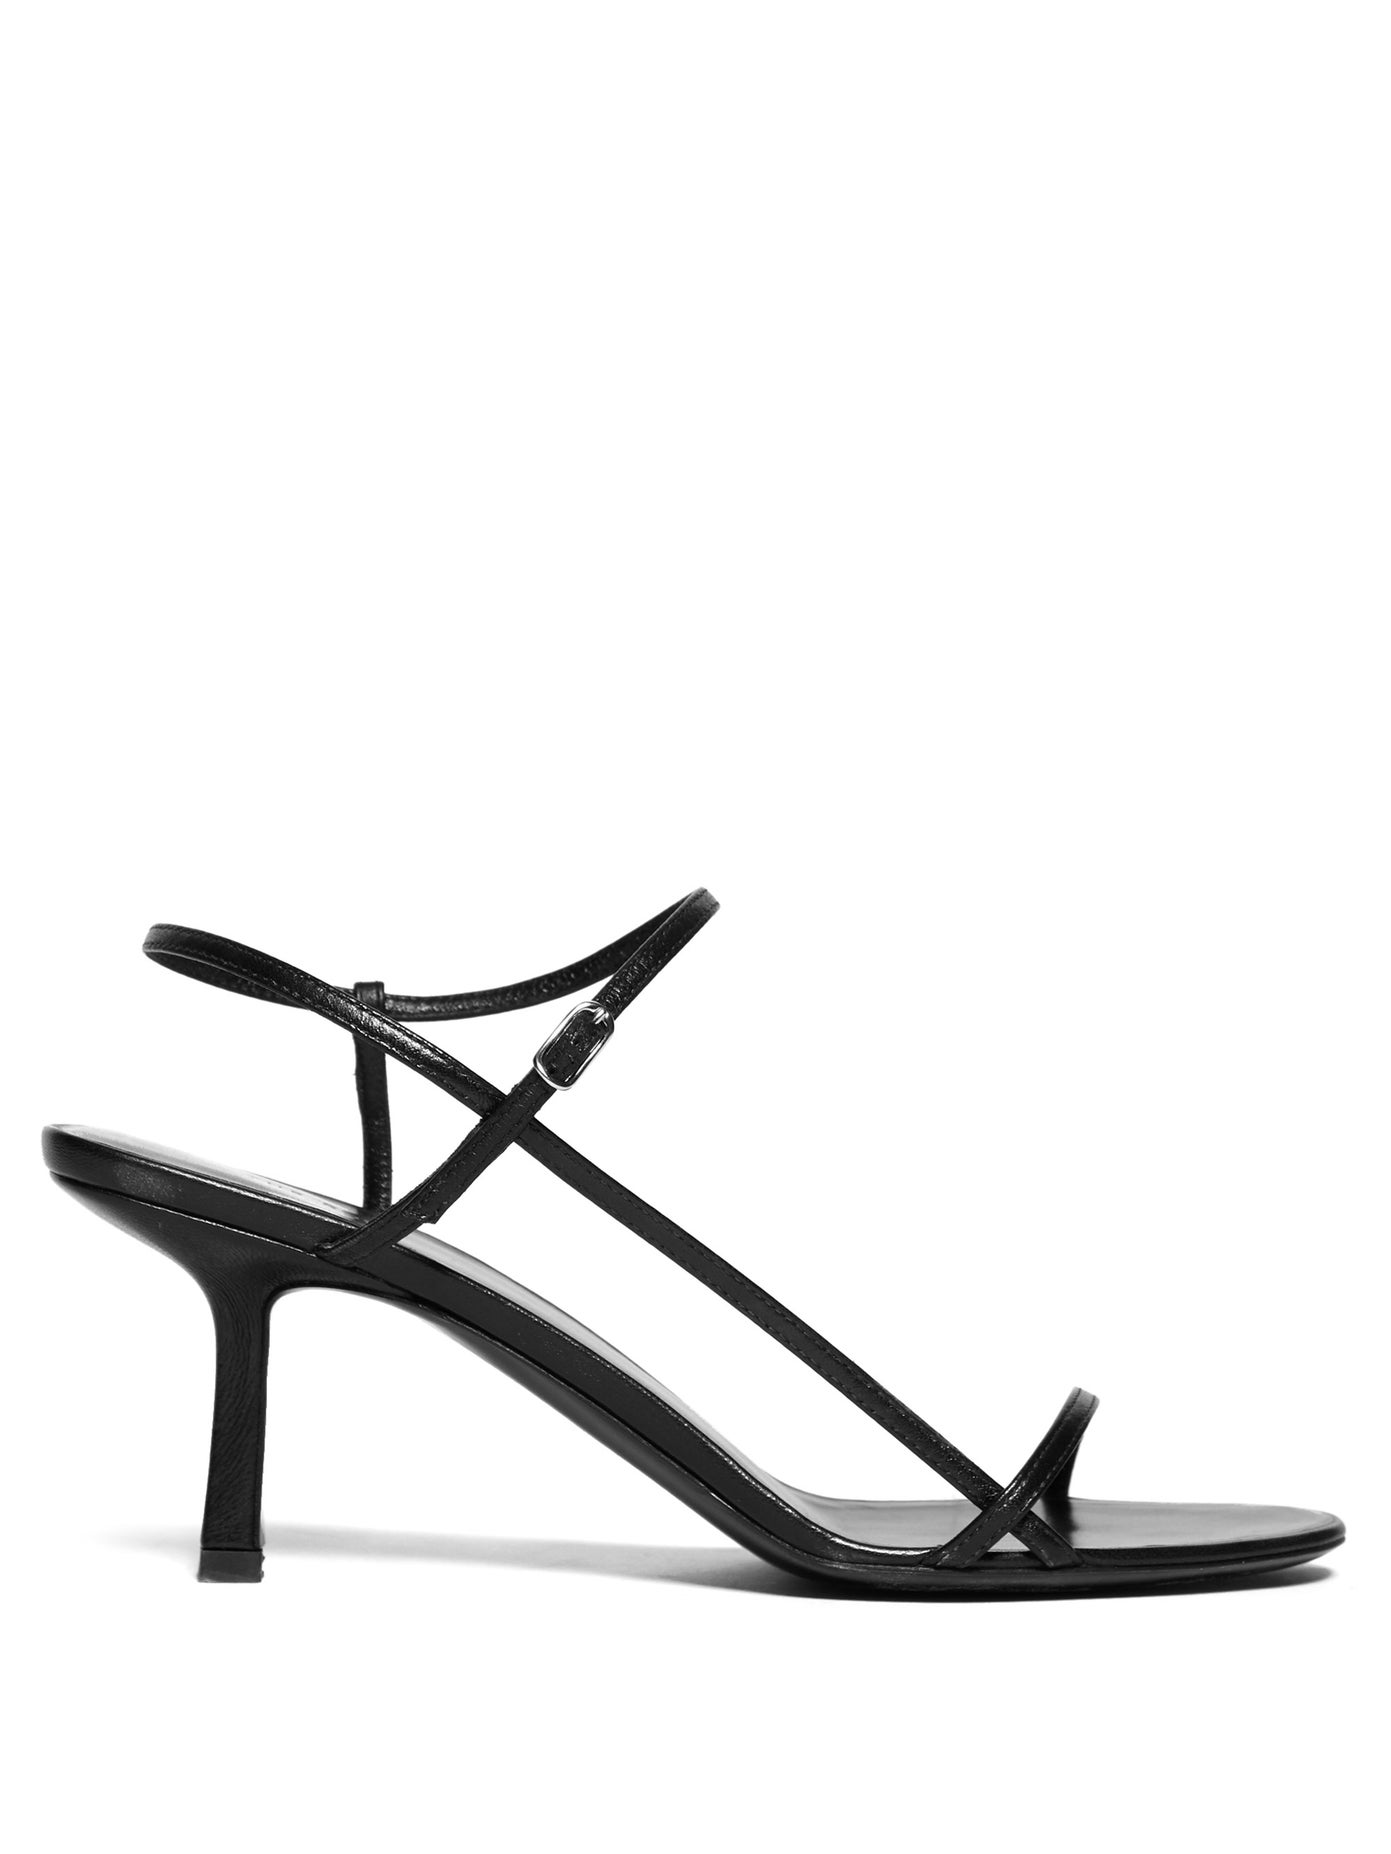 Bare mid-heel leather sandals by The Row, available on matchesfashion.com for $316 Kendall Jenner Shoes Exact Product